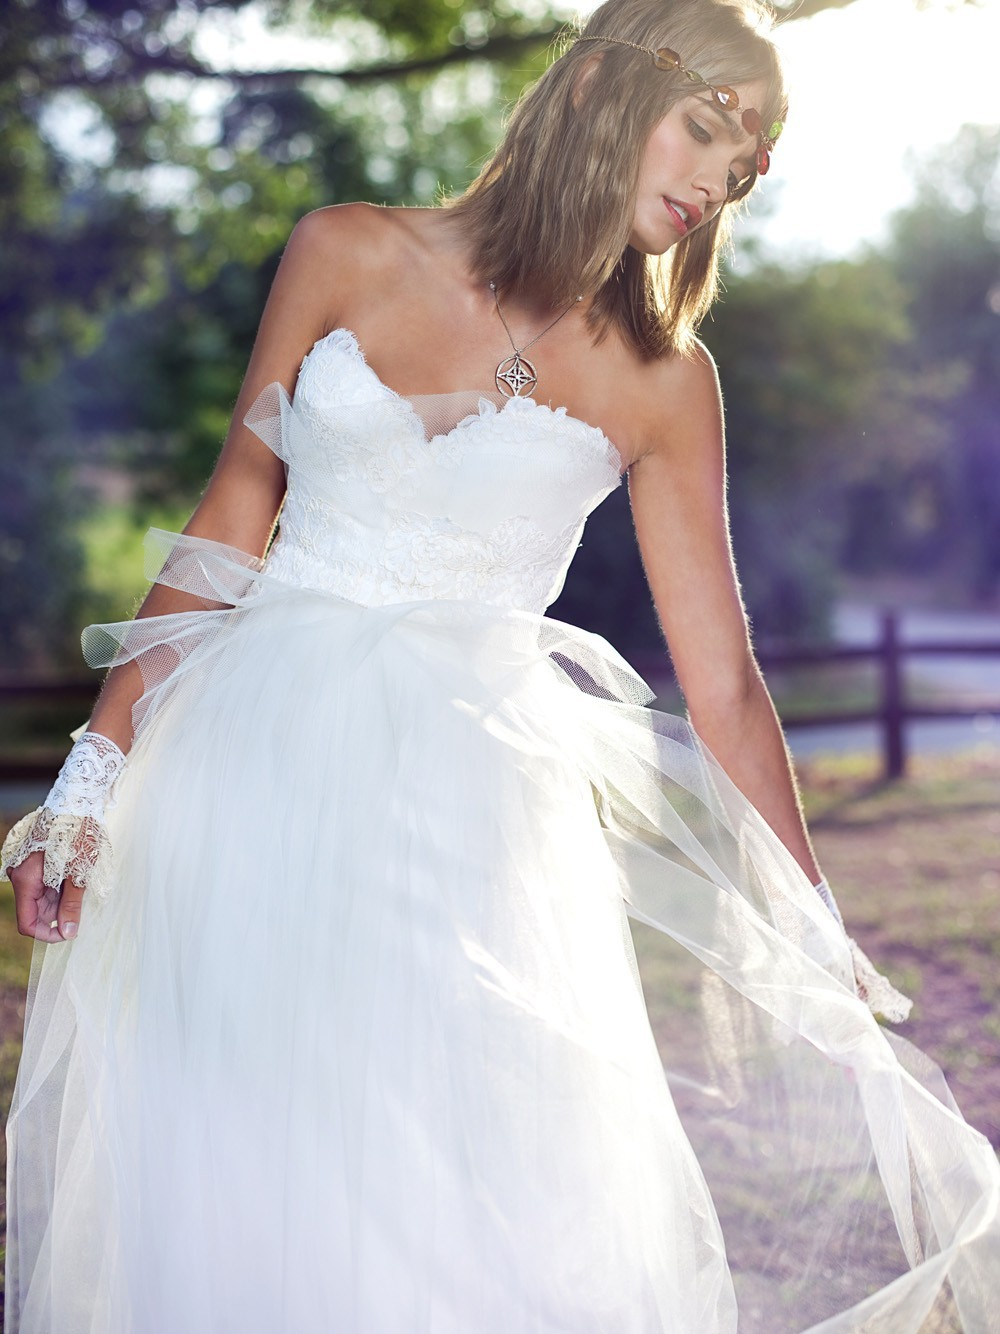 Queen-for-a-day-wedding-dress-2.full